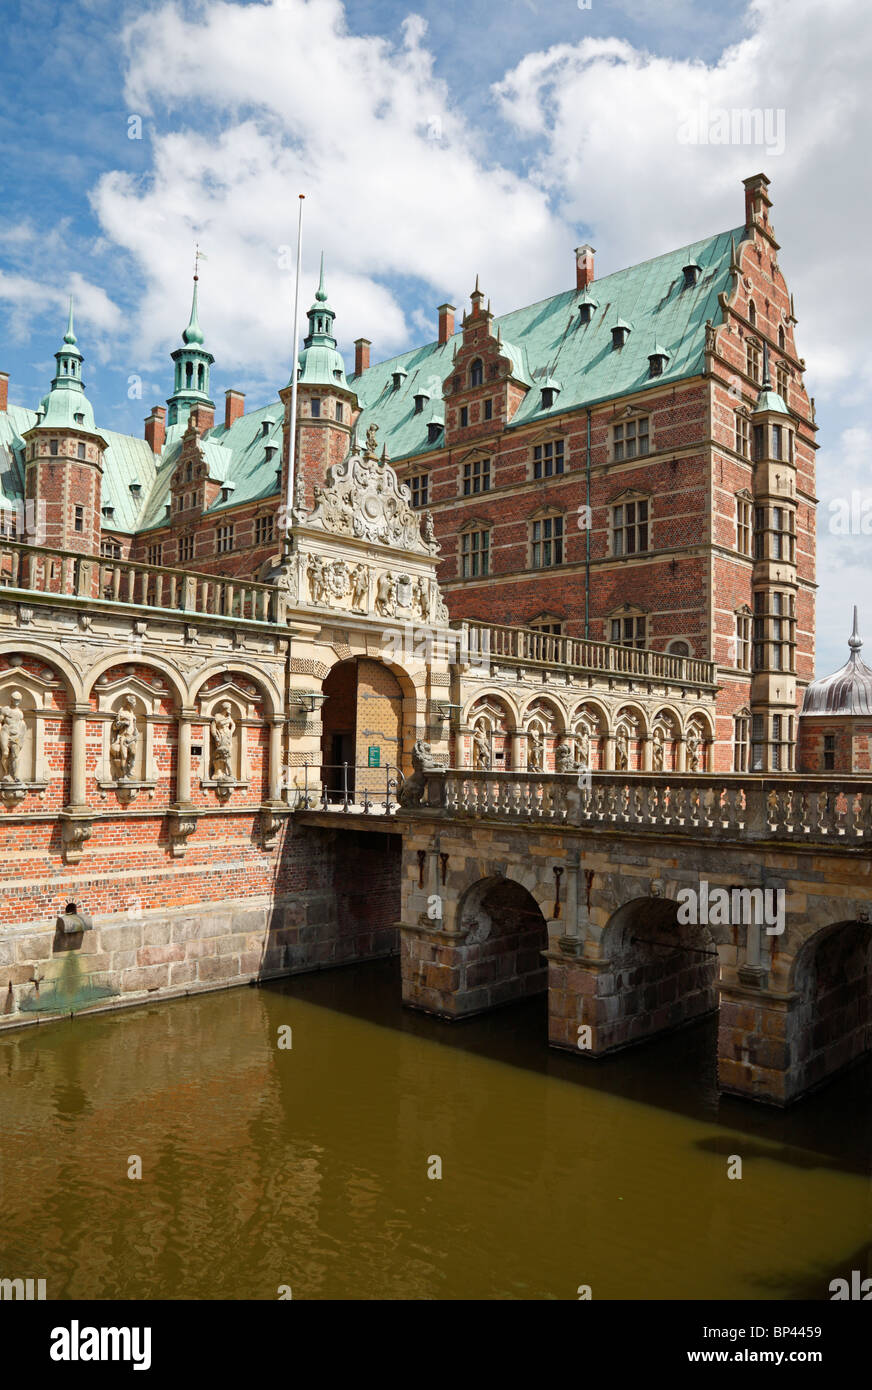 The entrance to the Frederiksborg Castle in Dutch Renaissance style over the moat in Hillerød near Copenhagen, Denmark. Stock Photo